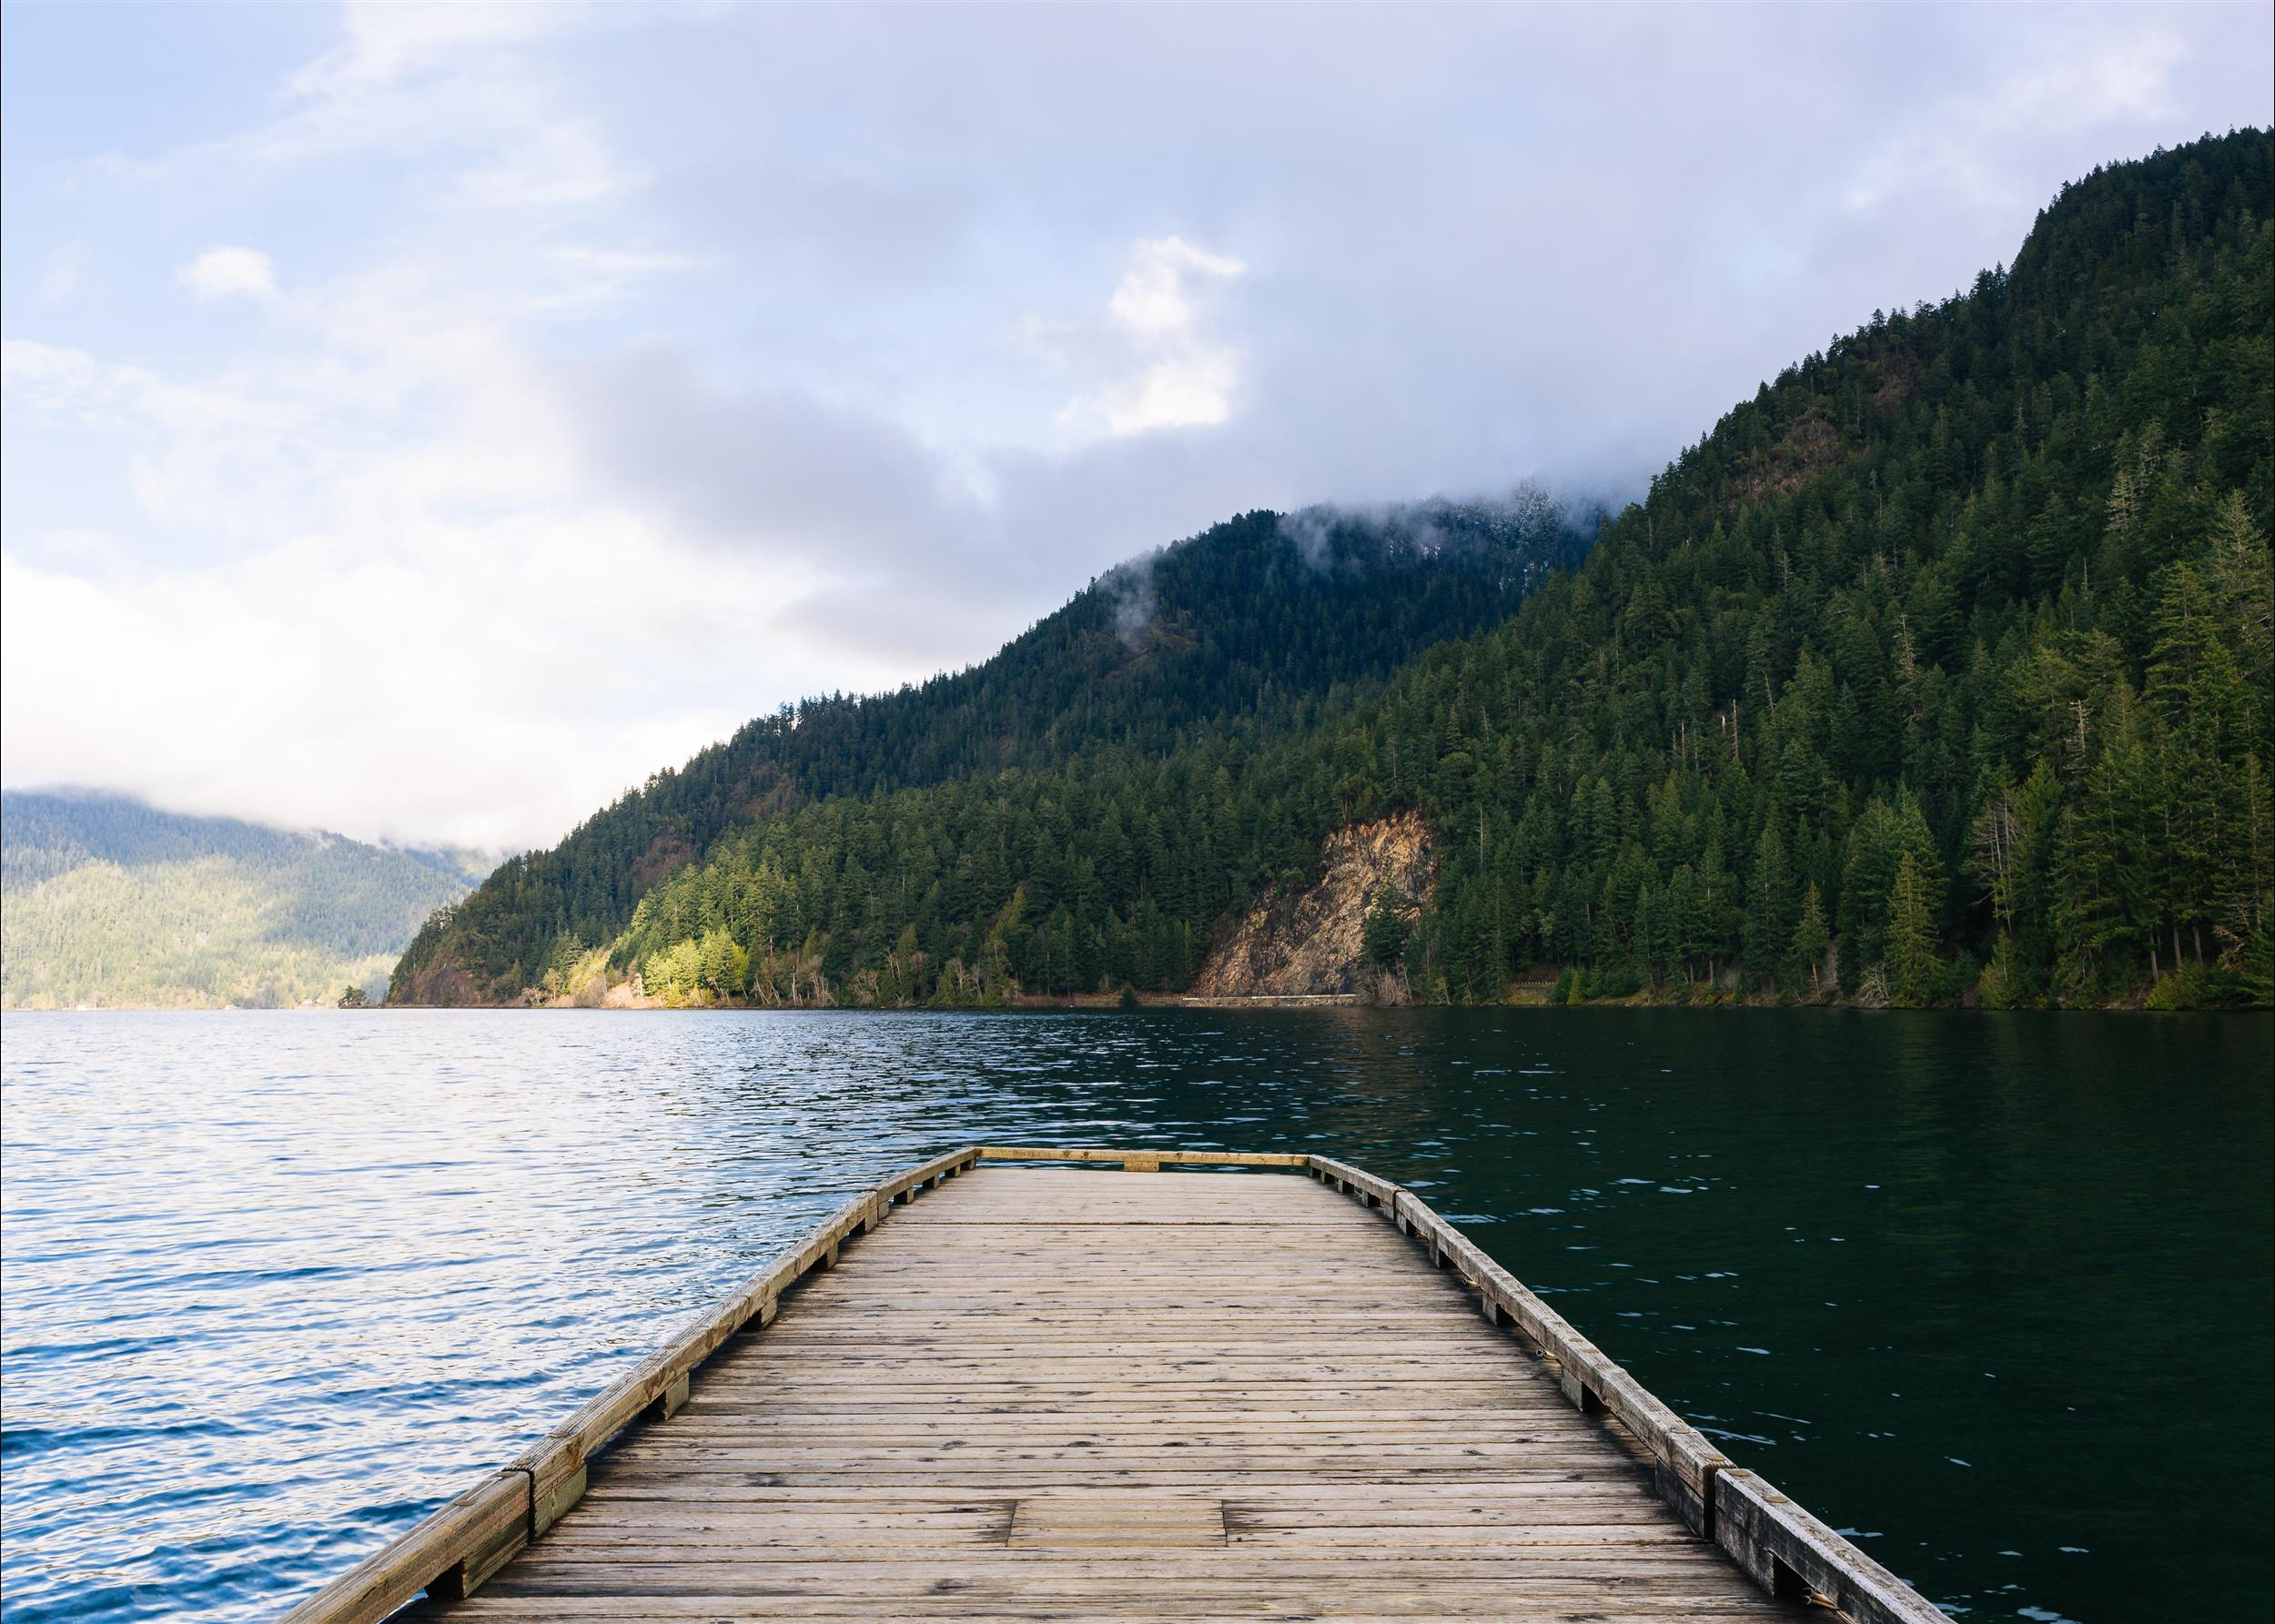 the docks with water and mountains with all the green trees